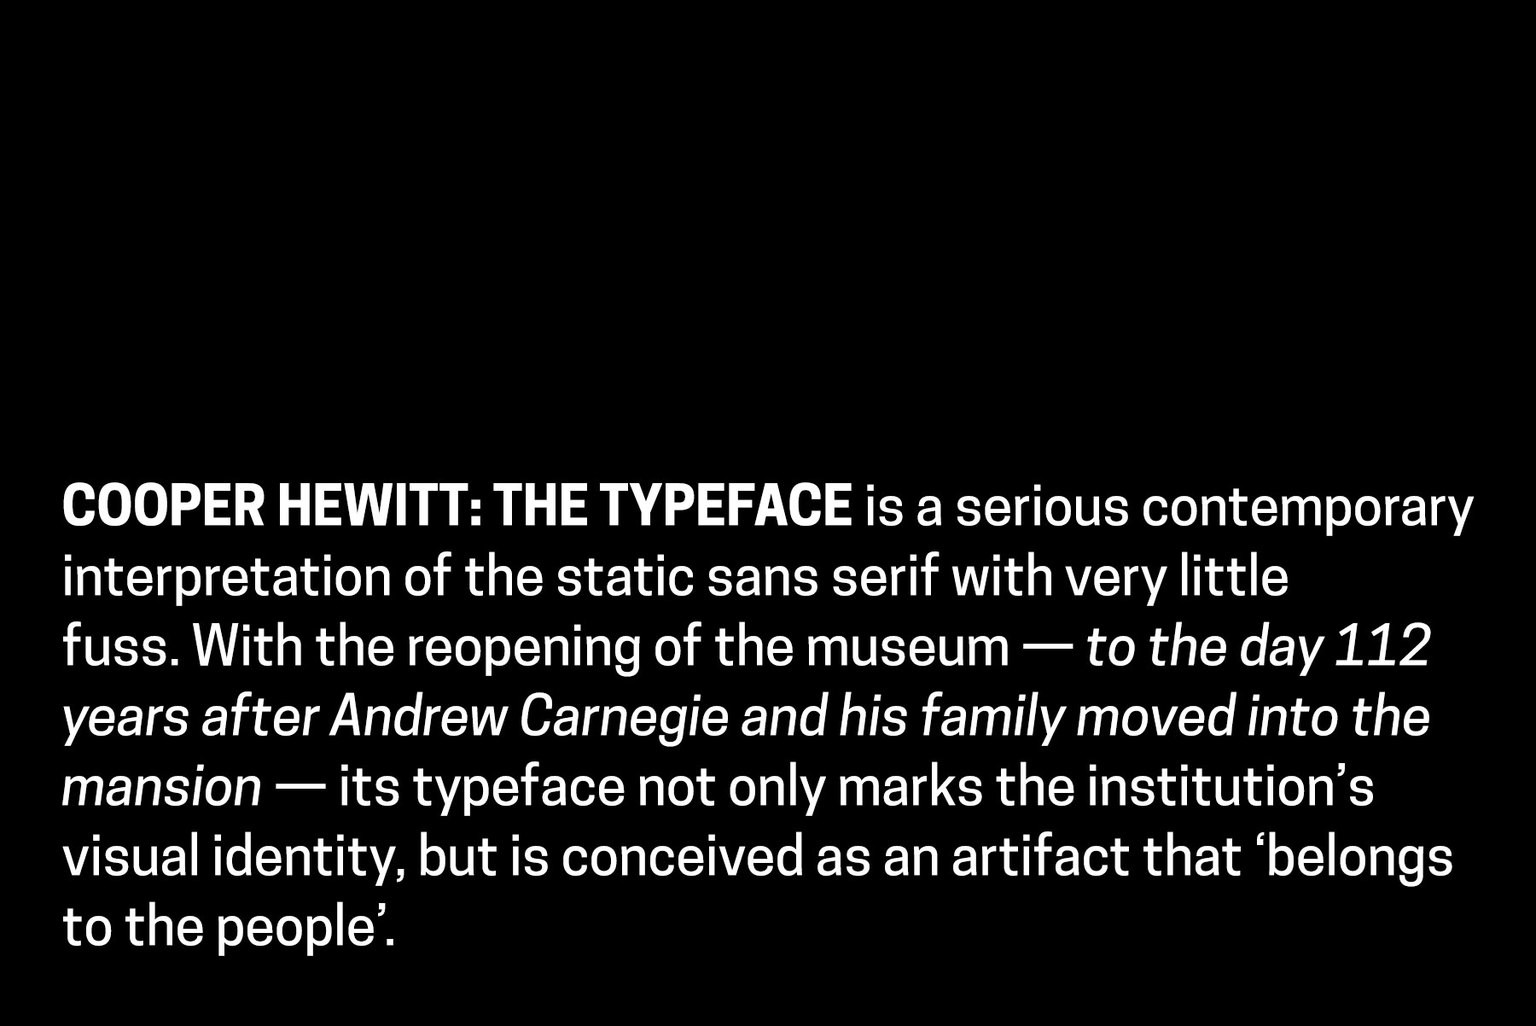 Vllg constellation cooperhewitt typographica